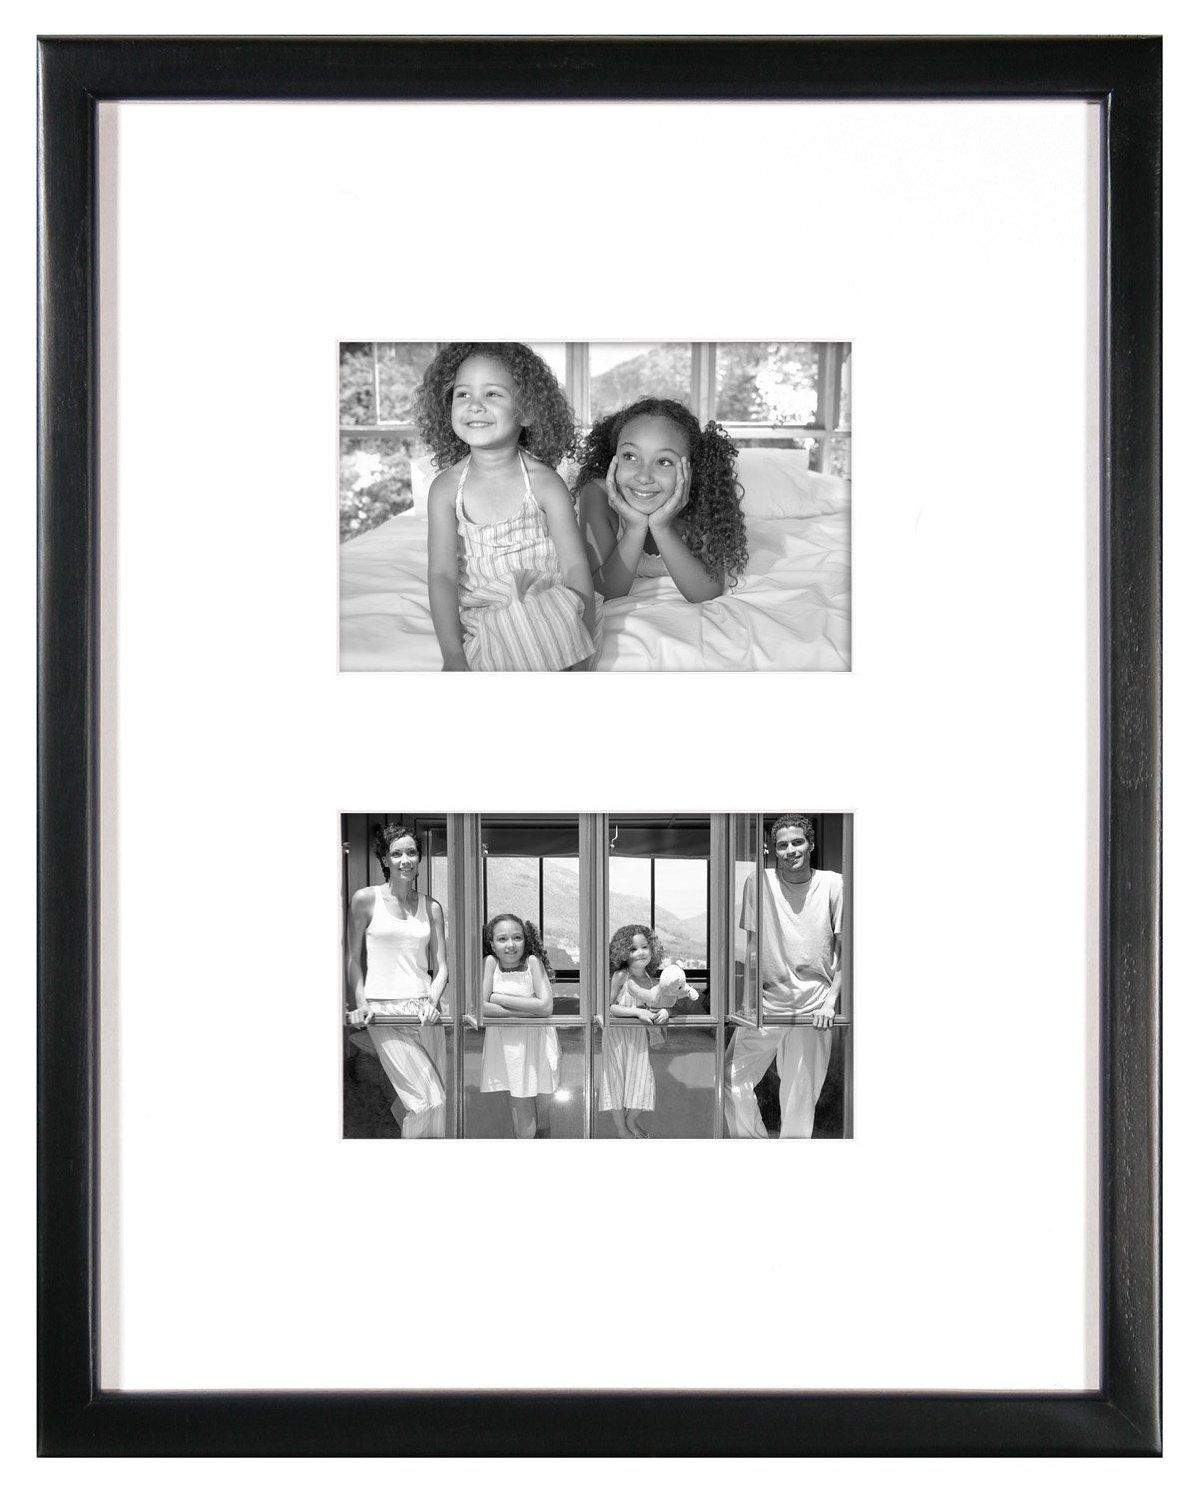 13 29 Amazon Com Mcs East Village Collage 11 By 14 Inch Frame With 2 4 Inch By 6 Inch Openings Black Home Collage Frames East Village Picture Frame Gallery